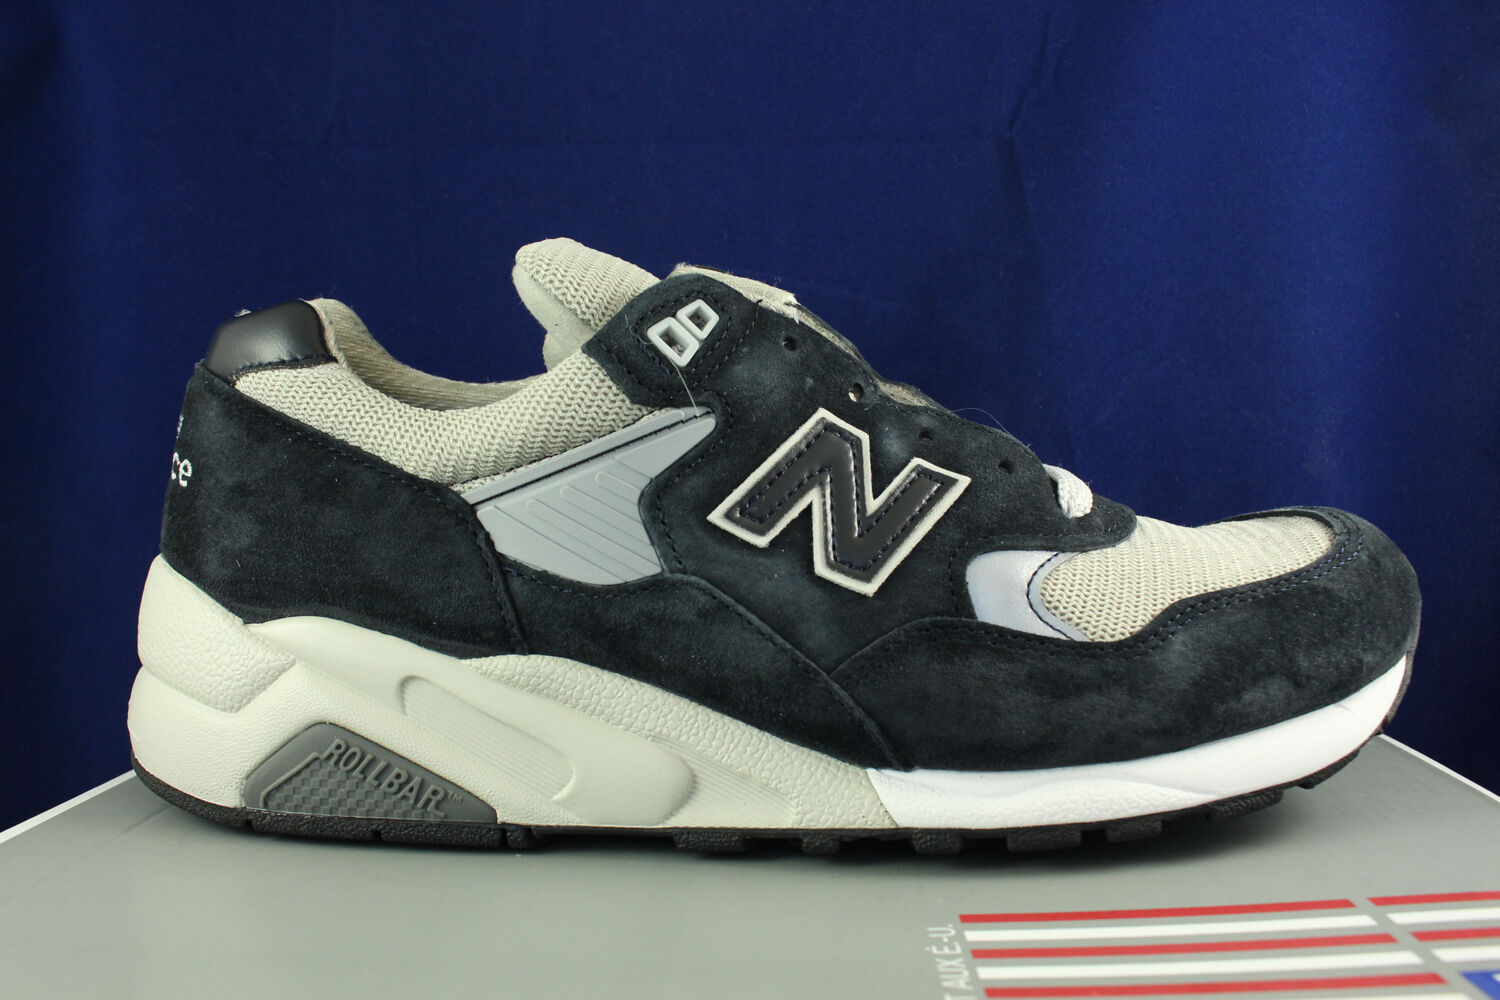 NEW BALANCE 585 BRINGBACK MADE IN USA NAVY grau Blau M585BG SZ 8